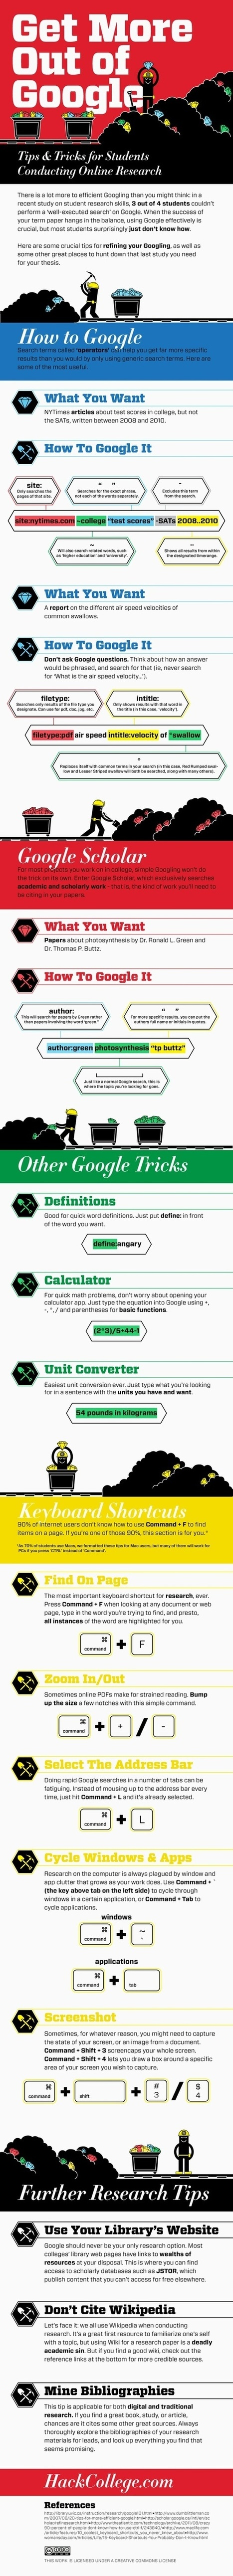 Tips and Tricks for students using Google - infographic - | Wiki_Universe | Scoop.it